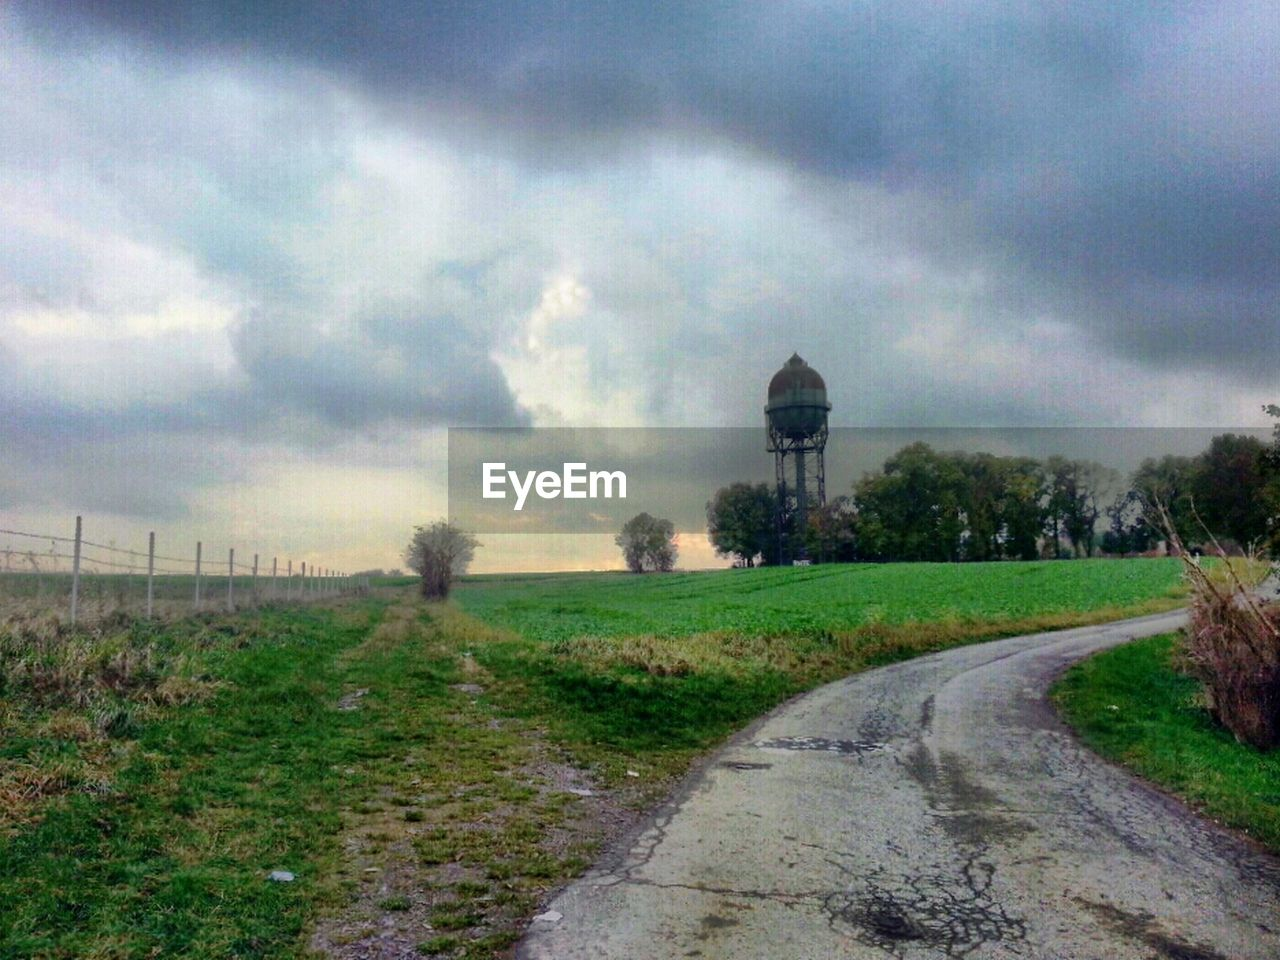 cloud - sky, sky, field, grass, the way forward, tree, day, landscape, nature, no people, outdoors, tranquility, built structure, road, rural scene, water tower - storage tank, scenics, architecture, beauty in nature